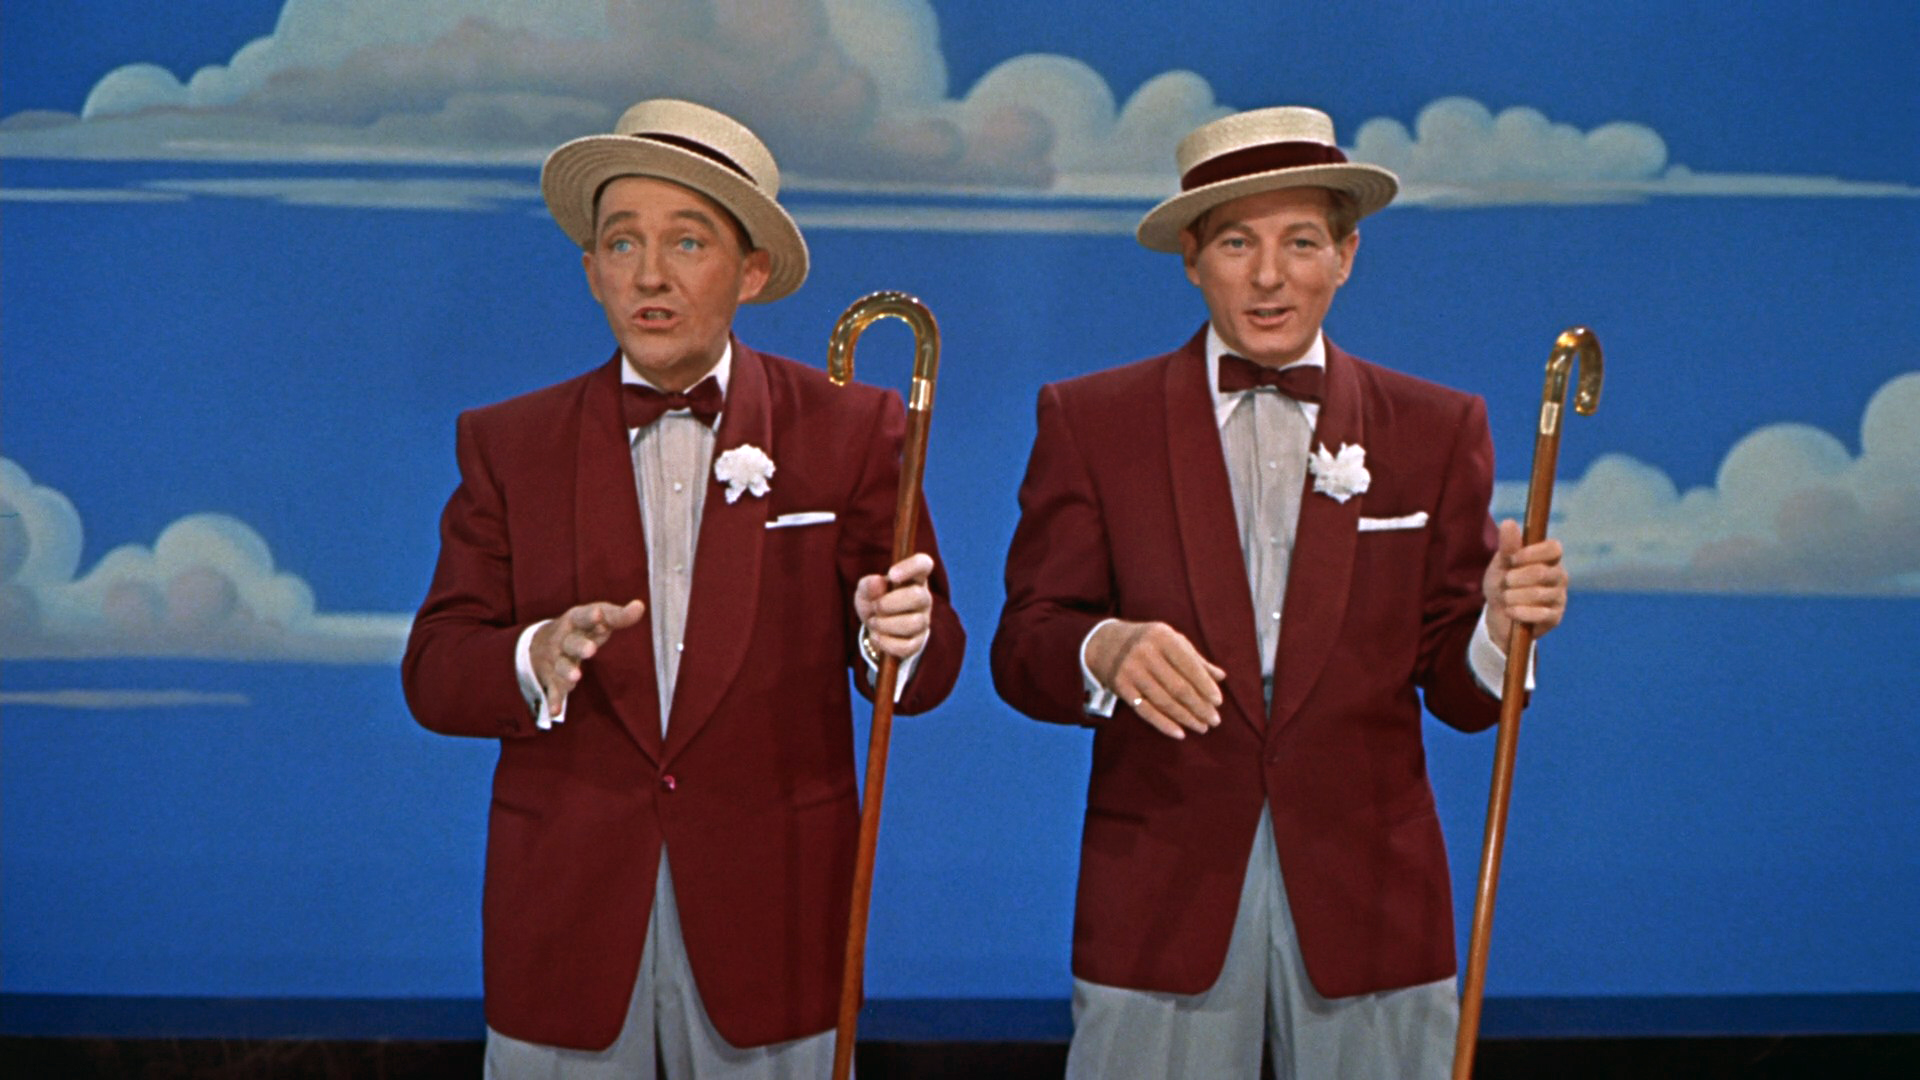 Danny Kaye and Bing Crosby standing in front of a blue background with white clouds scattered. They are wearing short, flat-brimmed straw hats, maroon suit coats, and each holding a cane in their left hand.